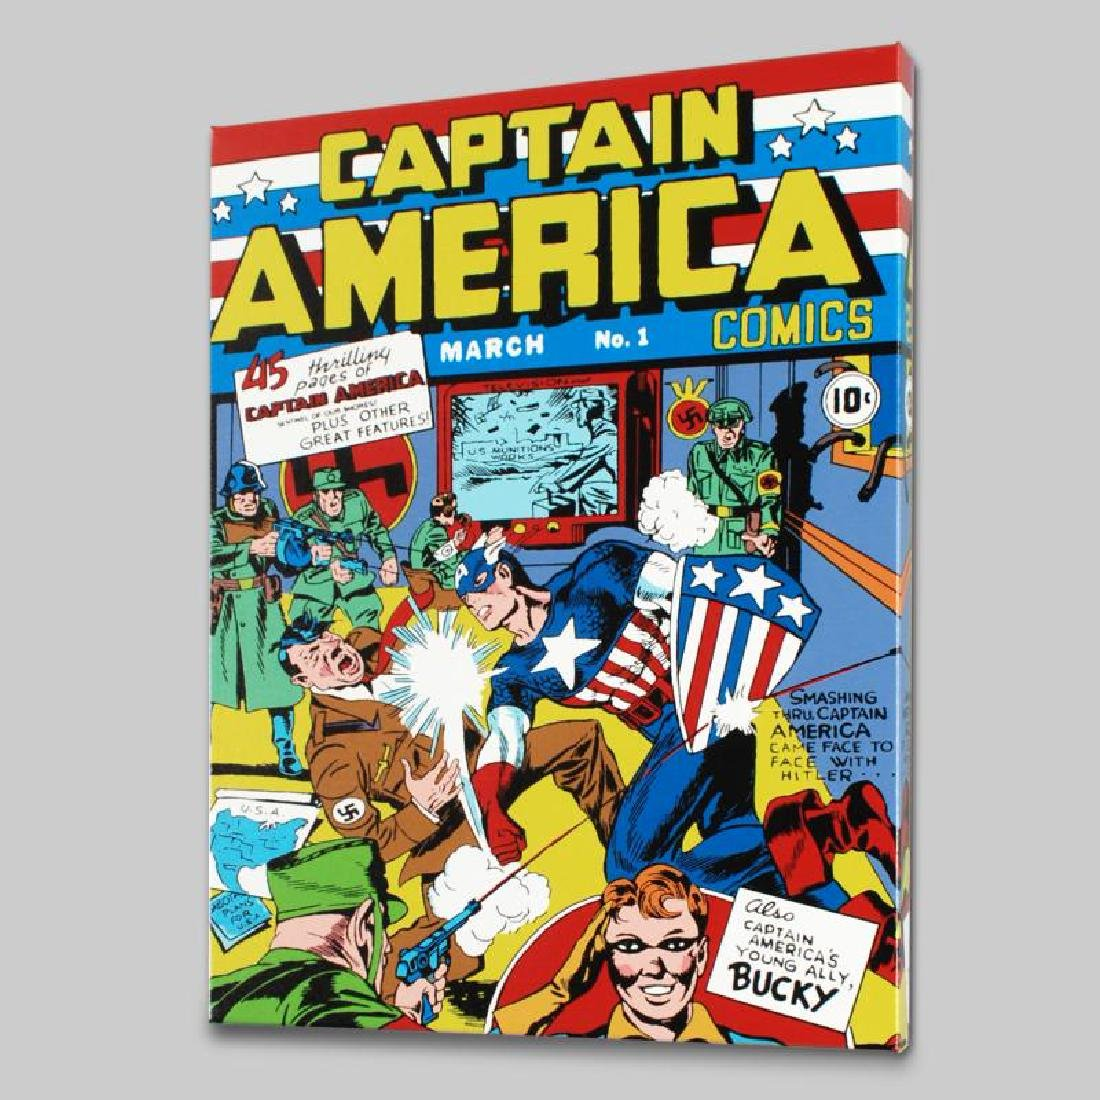 Captain America Comics #1 by Marvel Comics